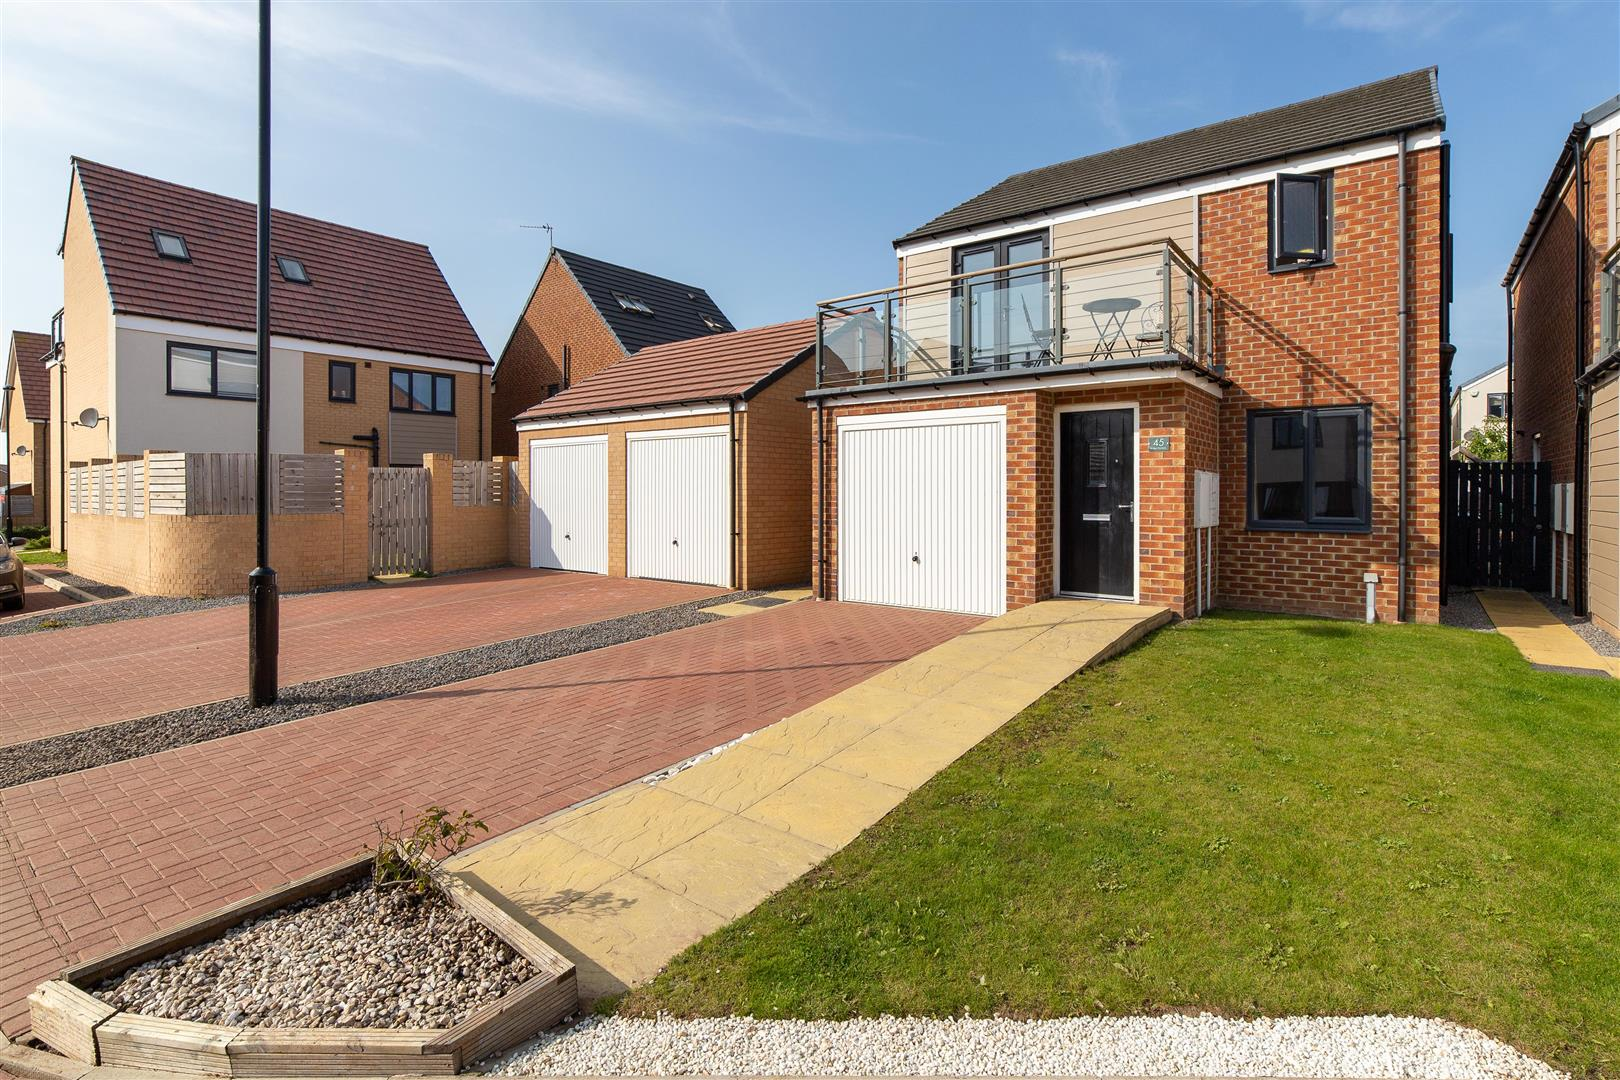 3 bed detached house for sale in Newcastle Upon Tyne, NE13 9DD, NE13